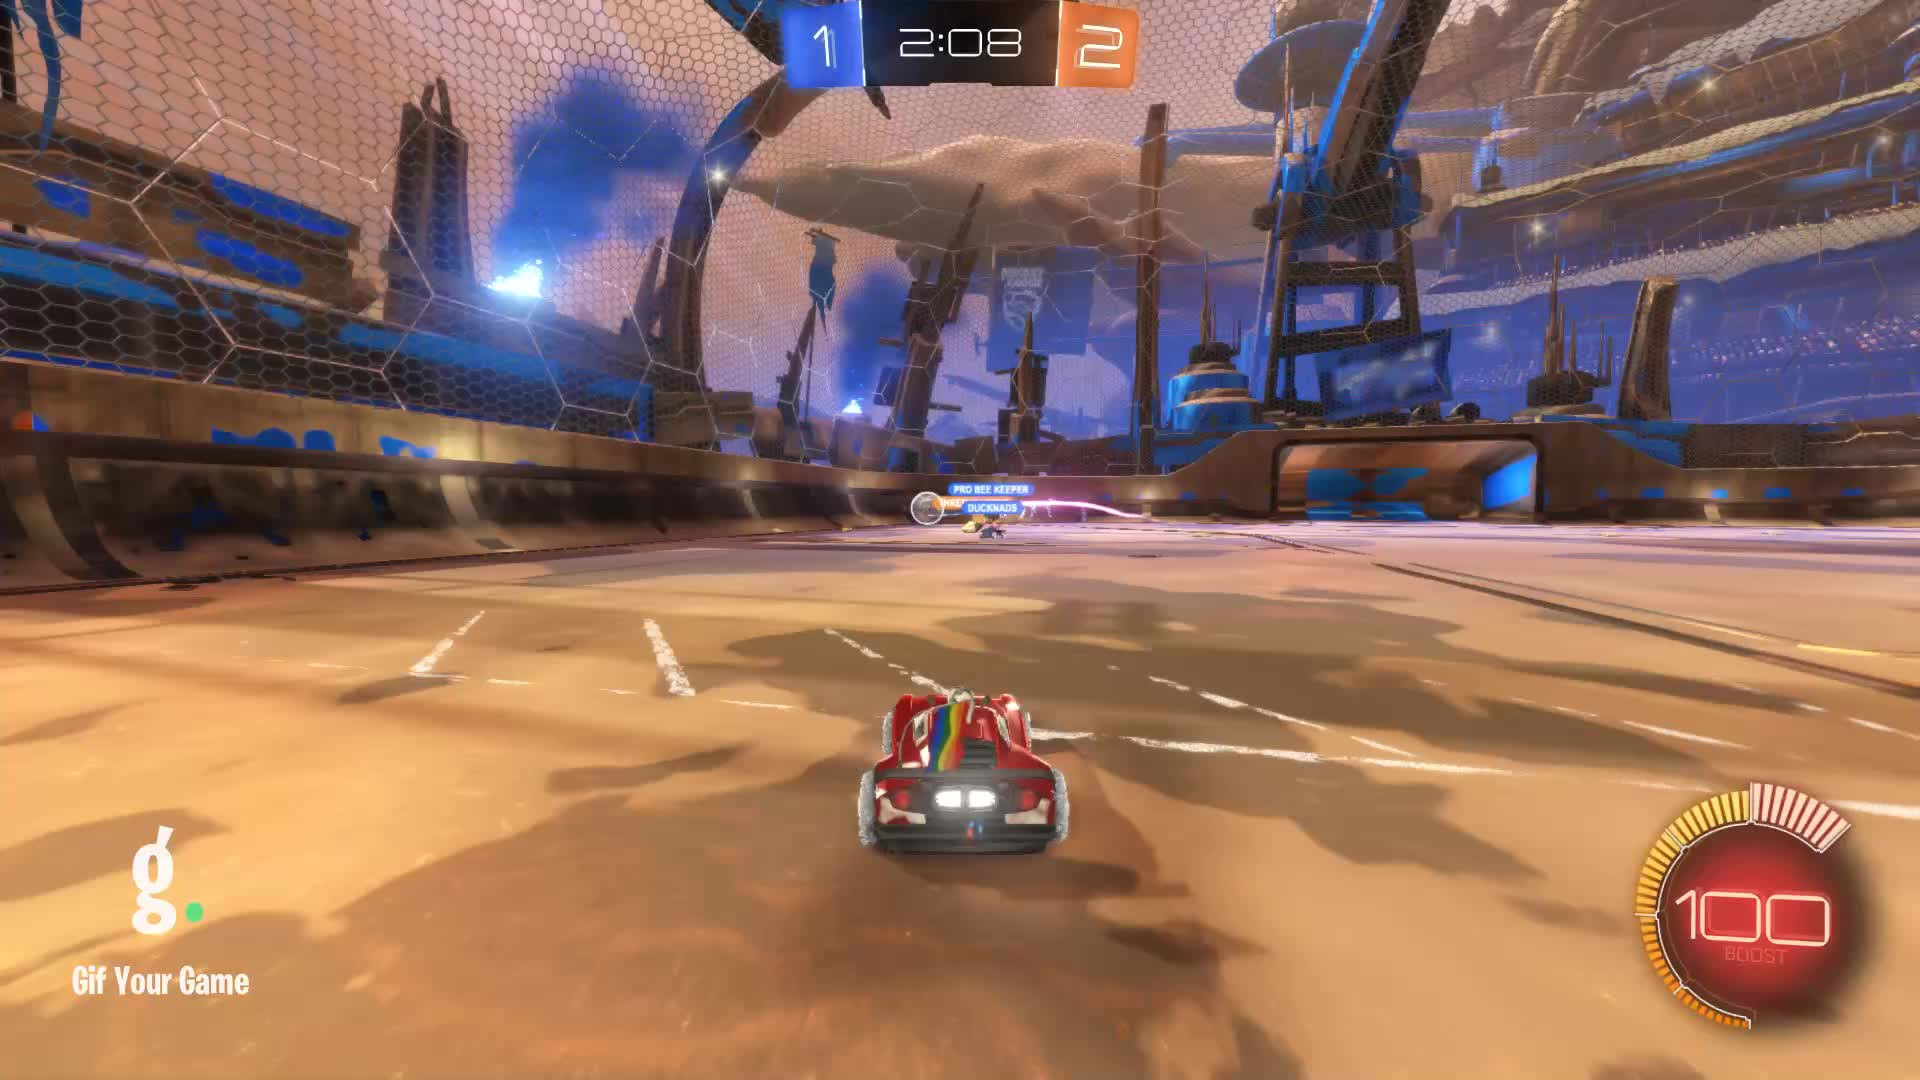 Gif Your Game, GifYourGame, I like beards :), Rocket League, RocketLeague, Goal 4: I like beards :) GIFs